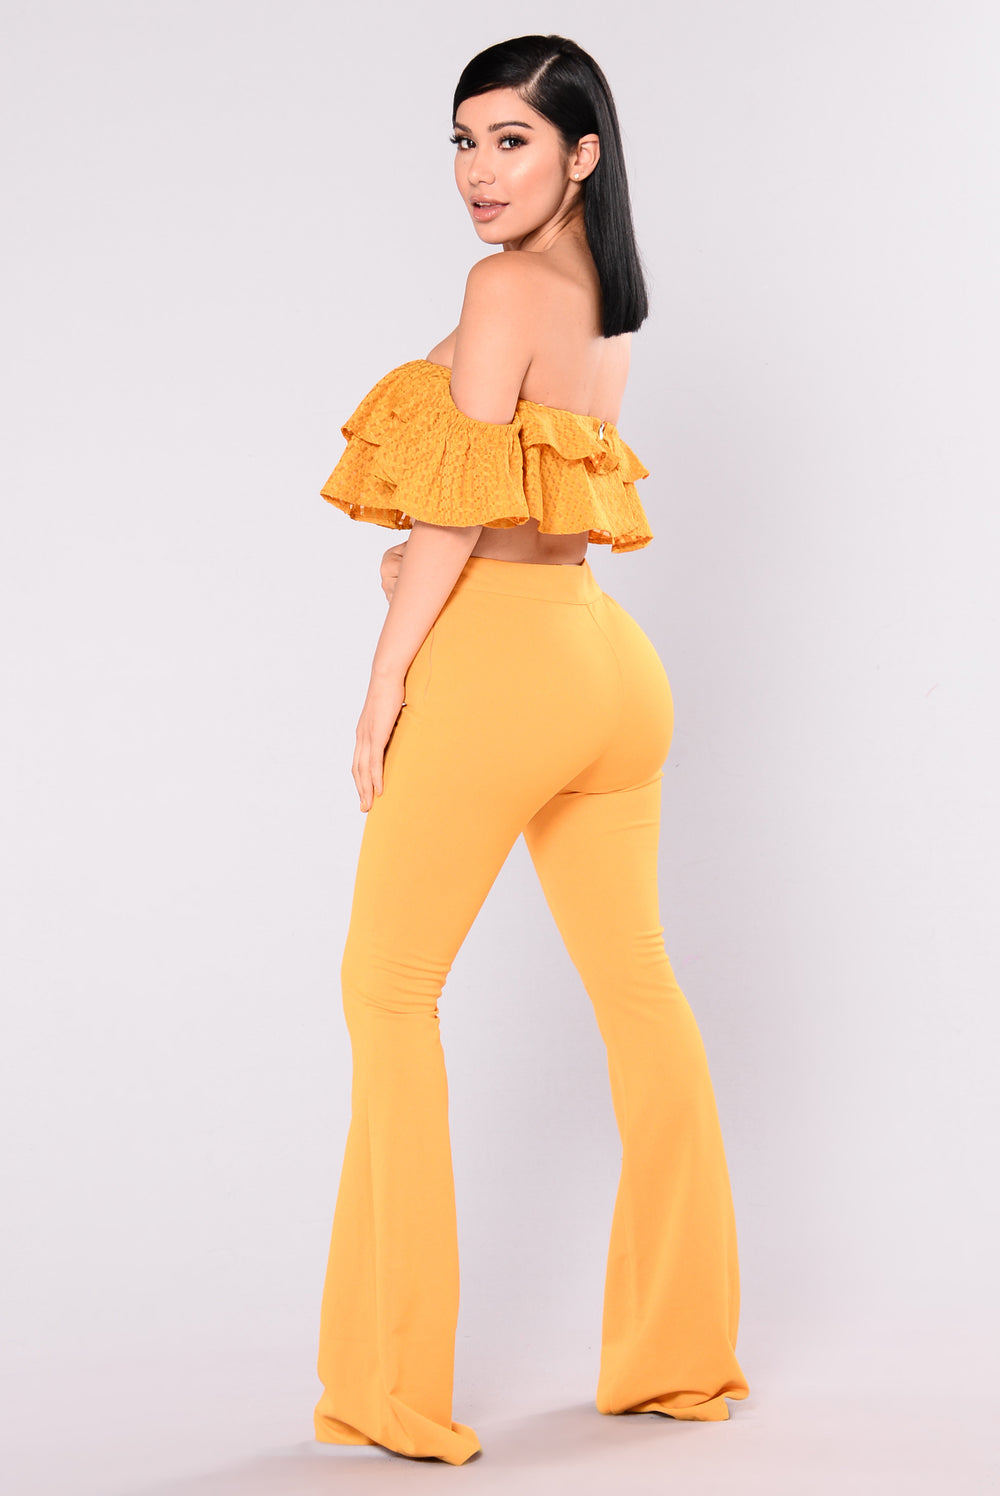 Best Of Me Ruffle Set - Mustard